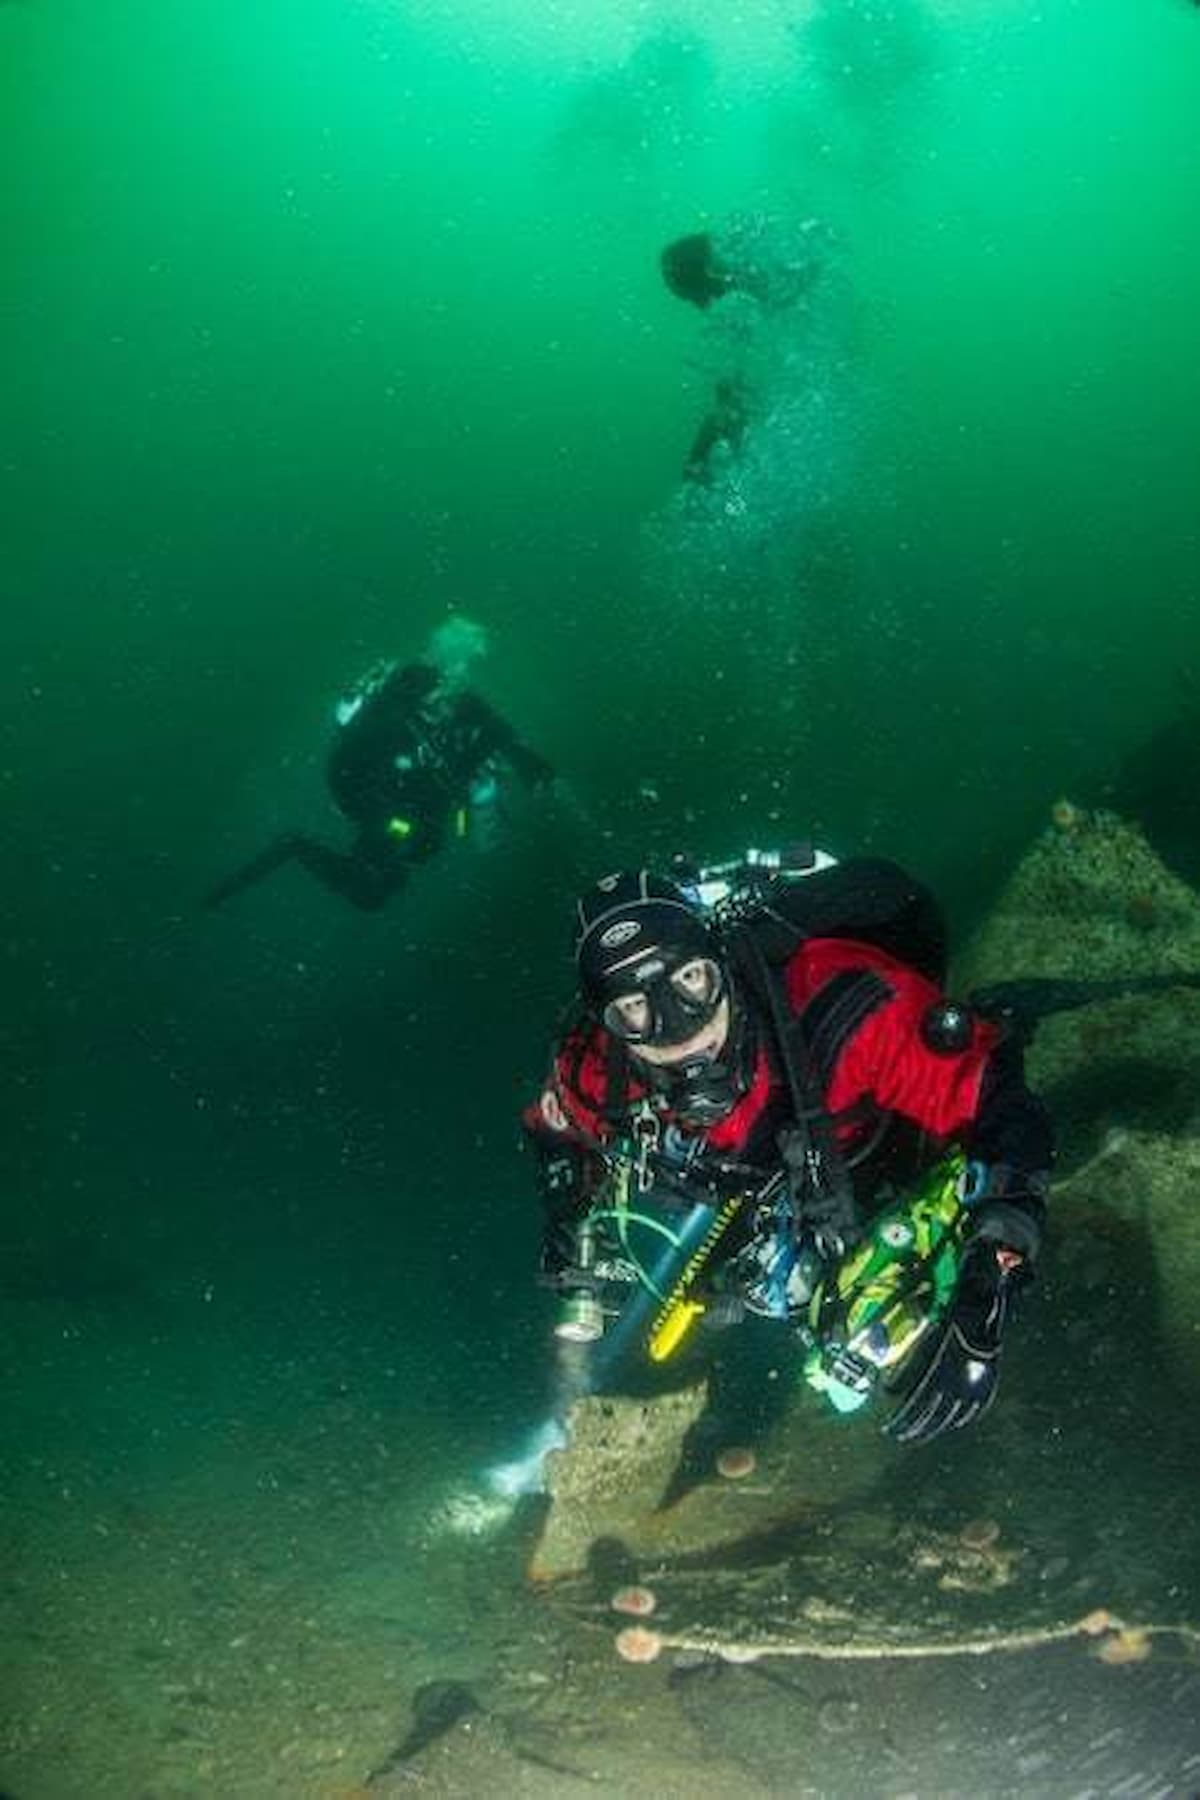 Big Scapa Clean up project